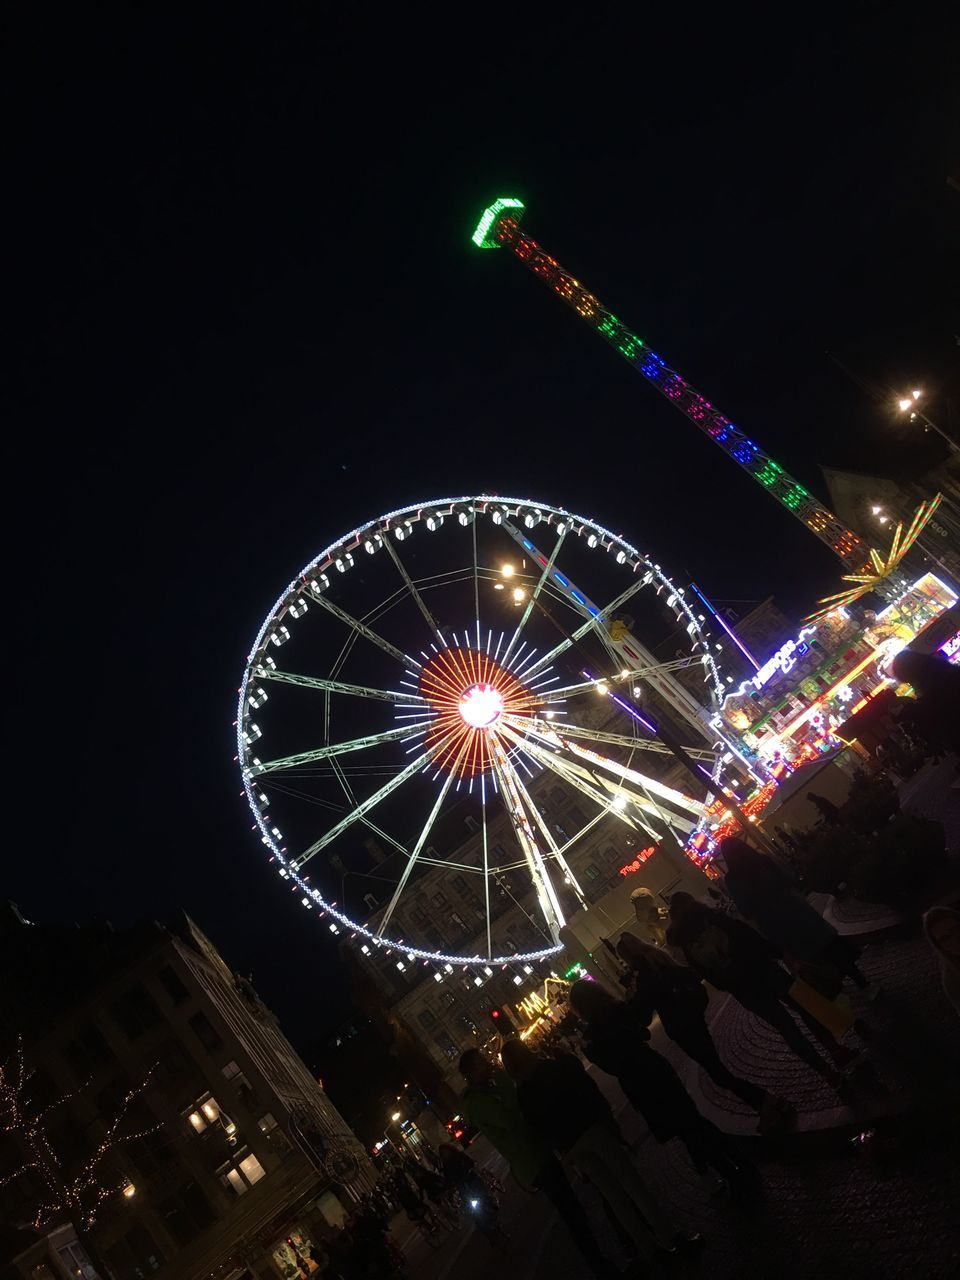 night, illuminated, arts culture and entertainment, built structure, amusement park, architecture, low angle view, building exterior, amusement park ride, ferris wheel, outdoors, no people, big wheel, sky, clear sky, city